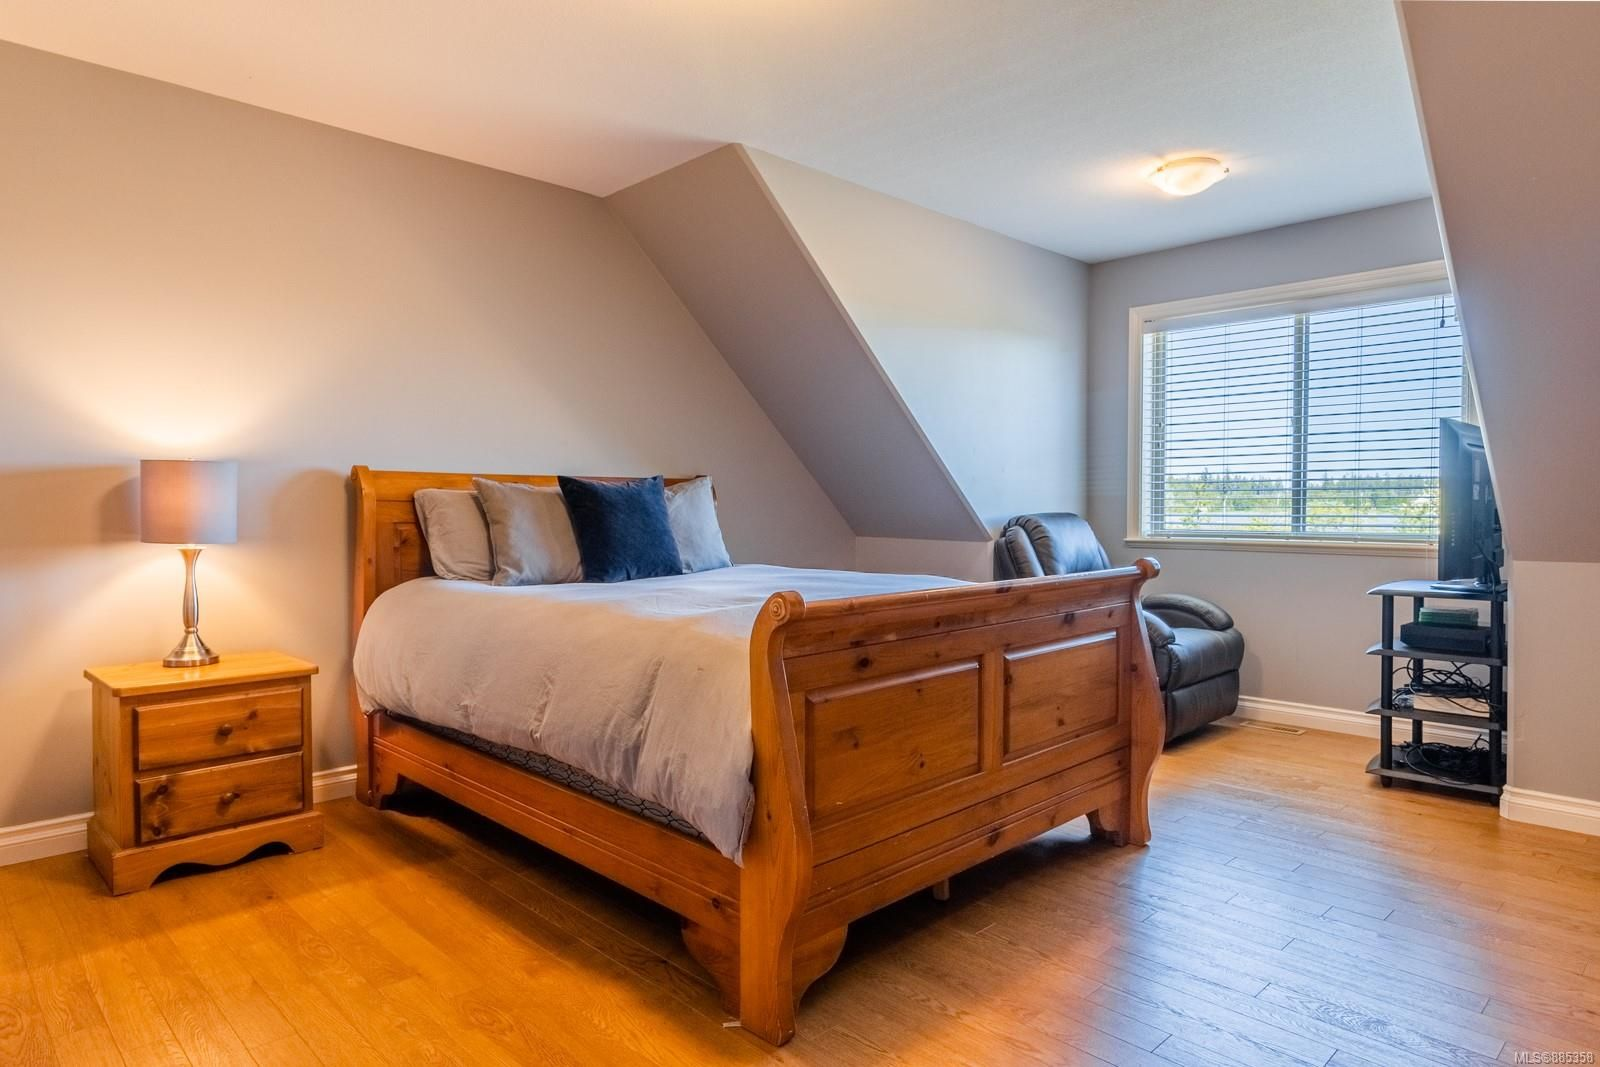 Photo 36: Photos: 2850 Peters Rd in : PQ Qualicum Beach House for sale (Parksville/Qualicum)  : MLS®# 885358